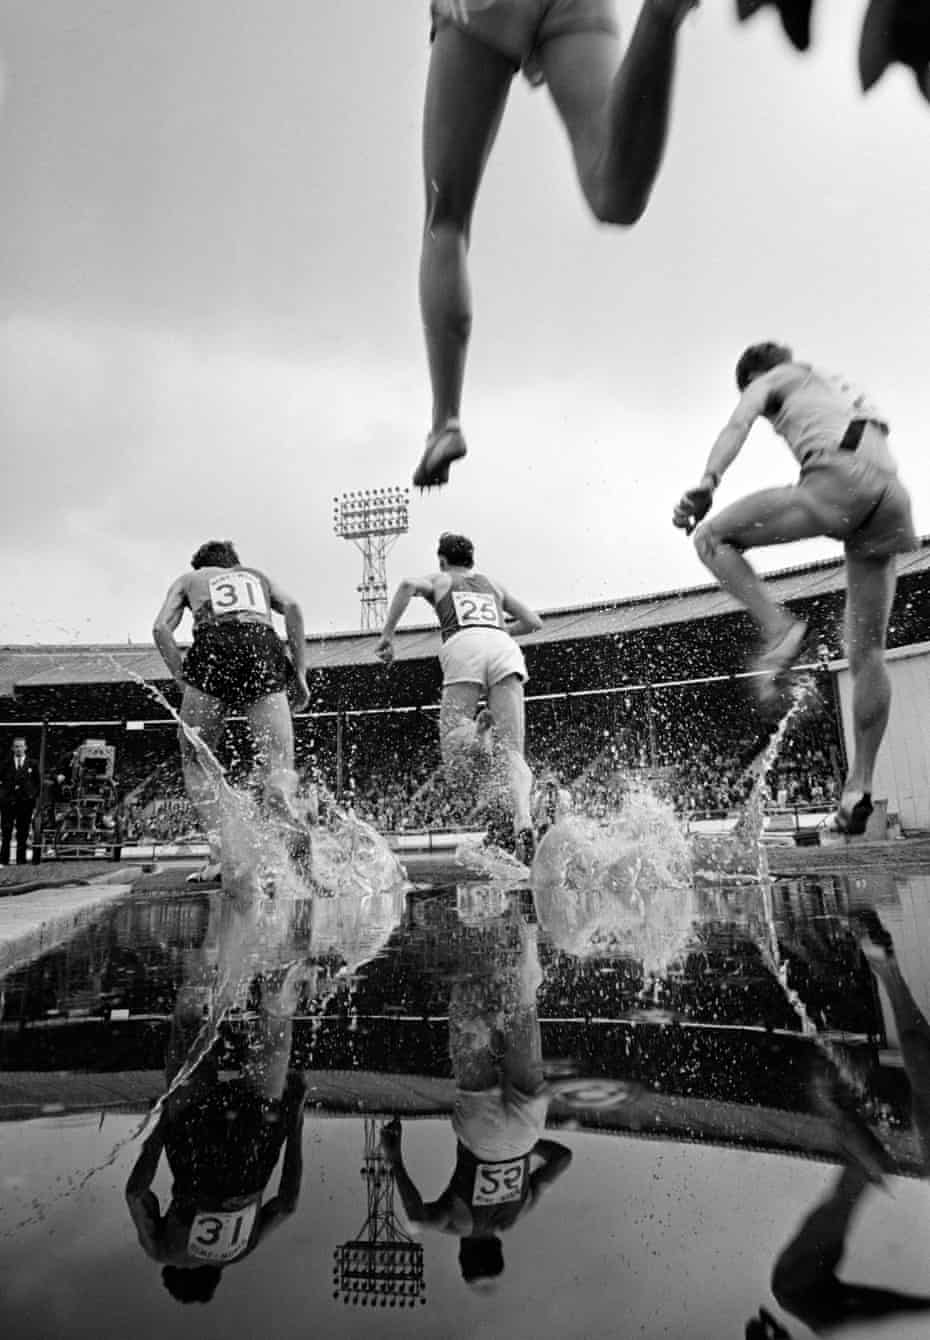 Athletes race through the water jump during the men's steeplechase at the British Games in 1965.